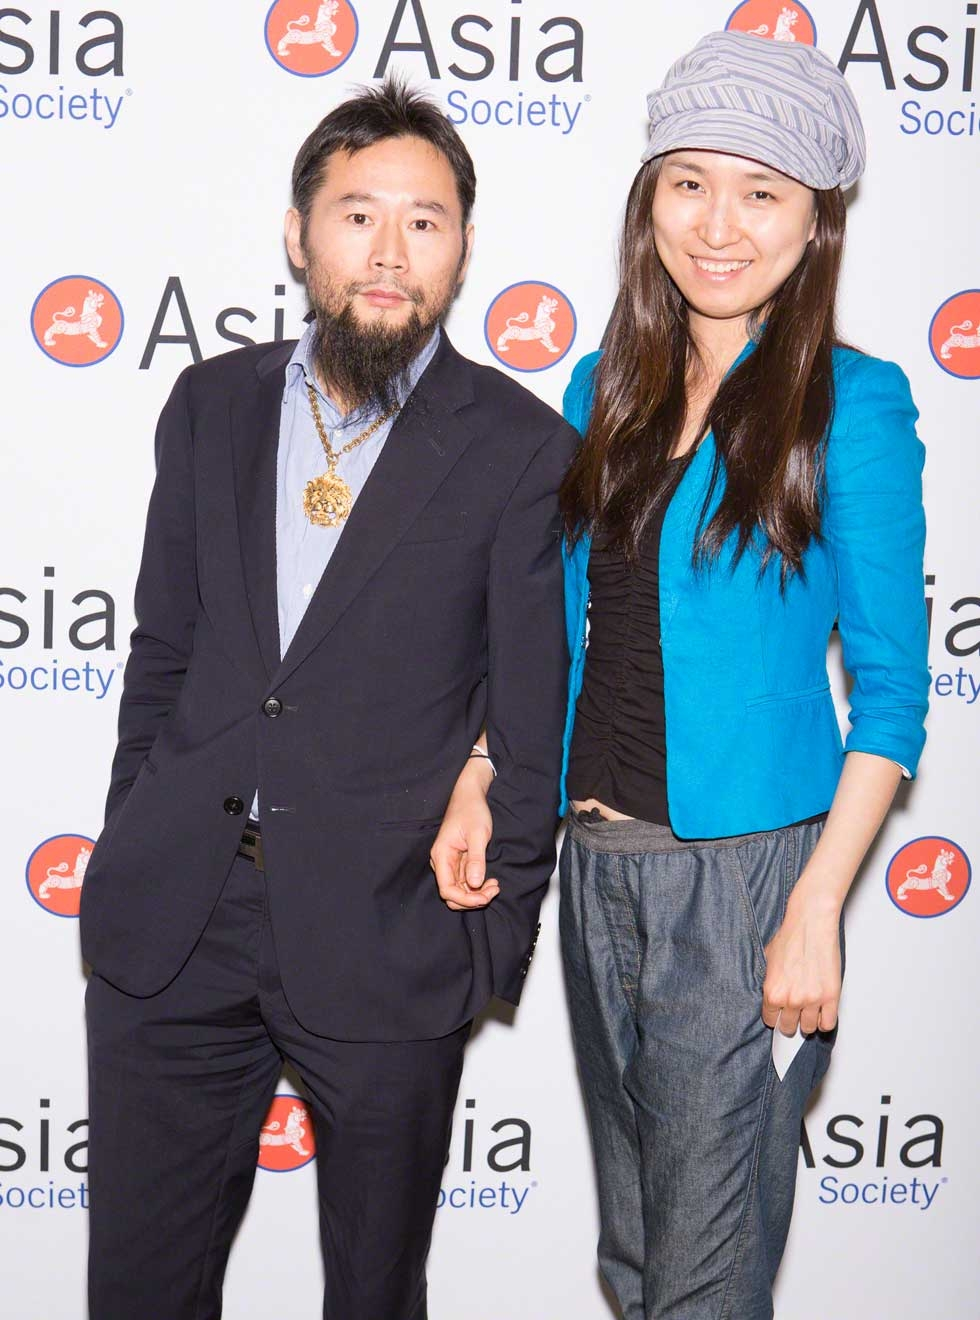 Stylish couple Liangang Sun and Dawei Wang at the Awards Dinner. (Bennet Cobliner)